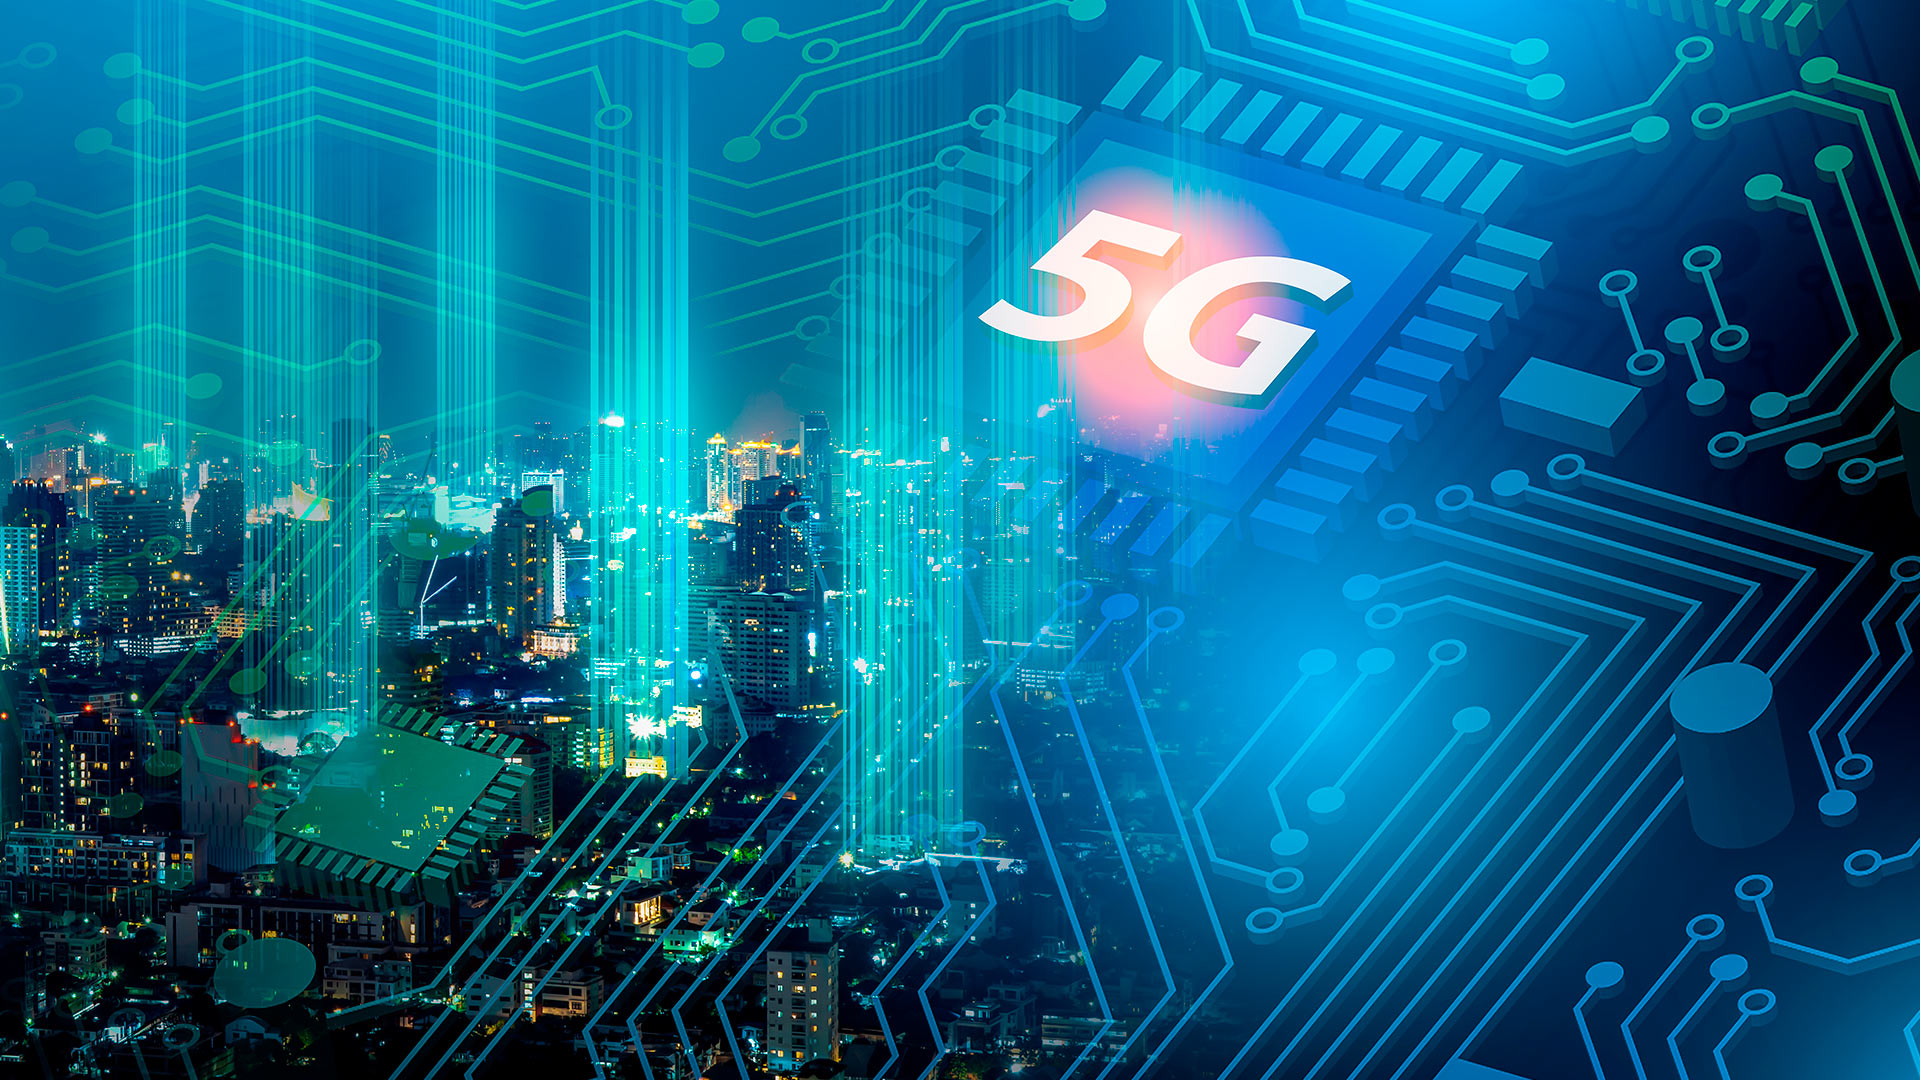 5G to Connect the Future Together